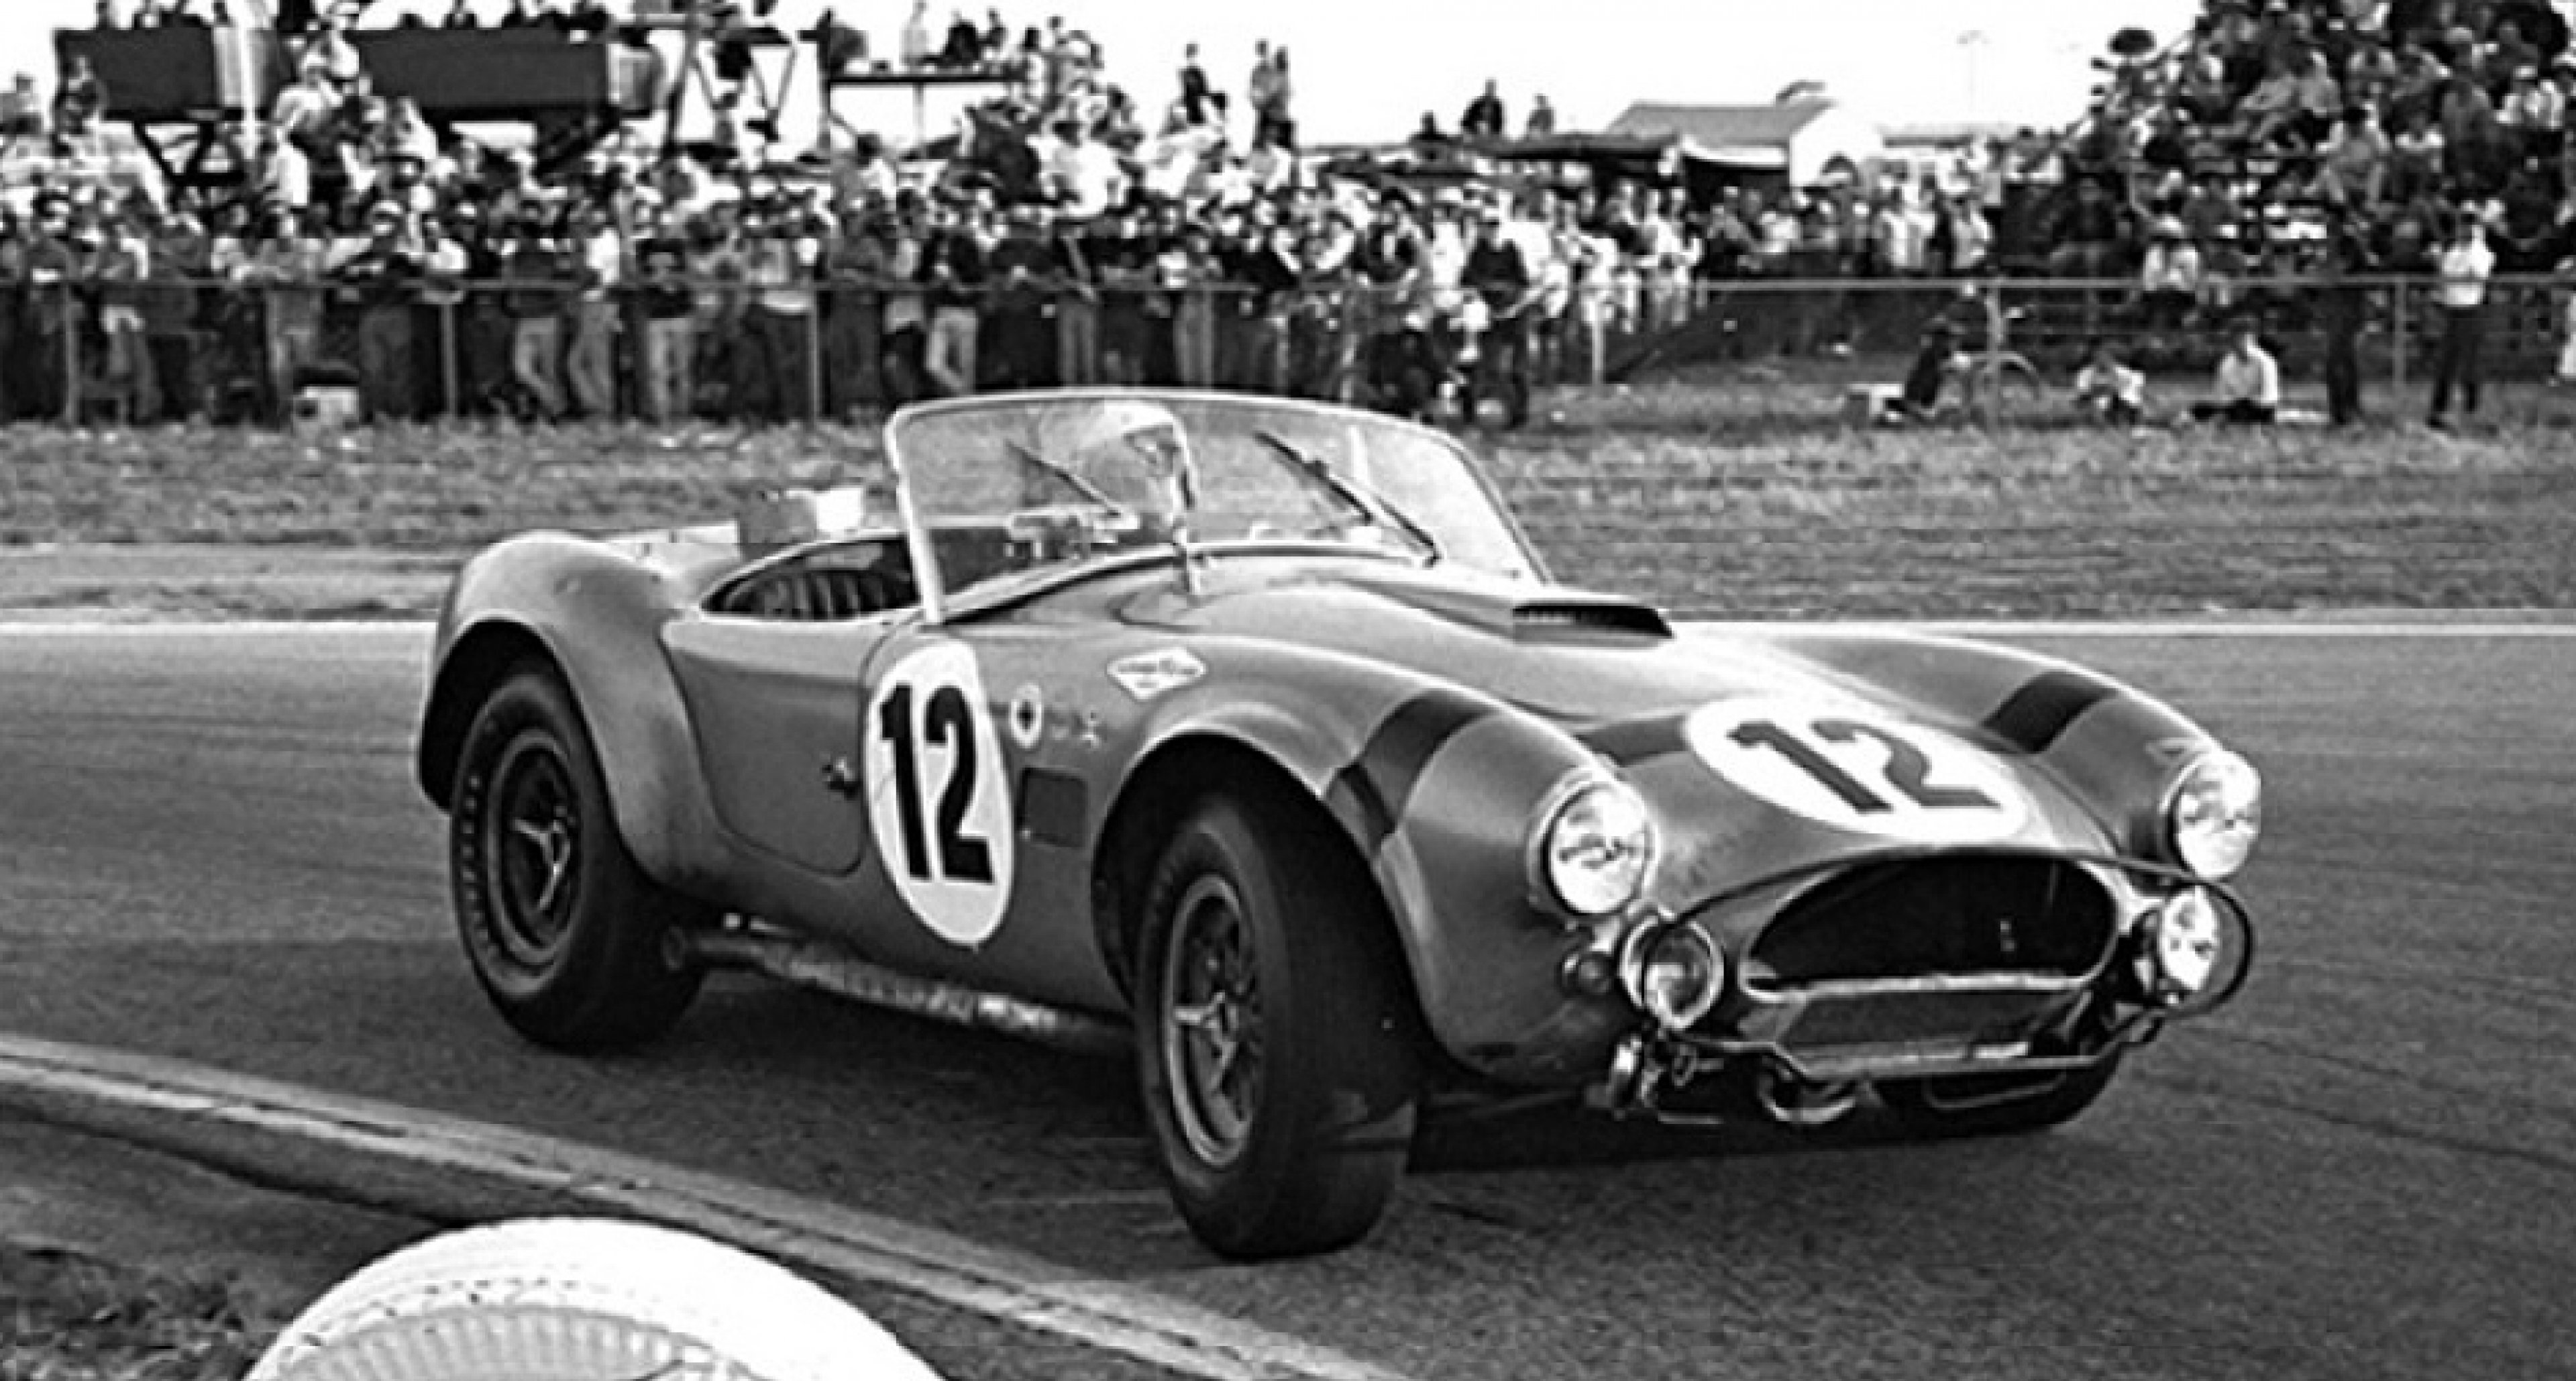 22 March, 1964:Sebring 12 Hours - Bondurant / Spencer - 5th